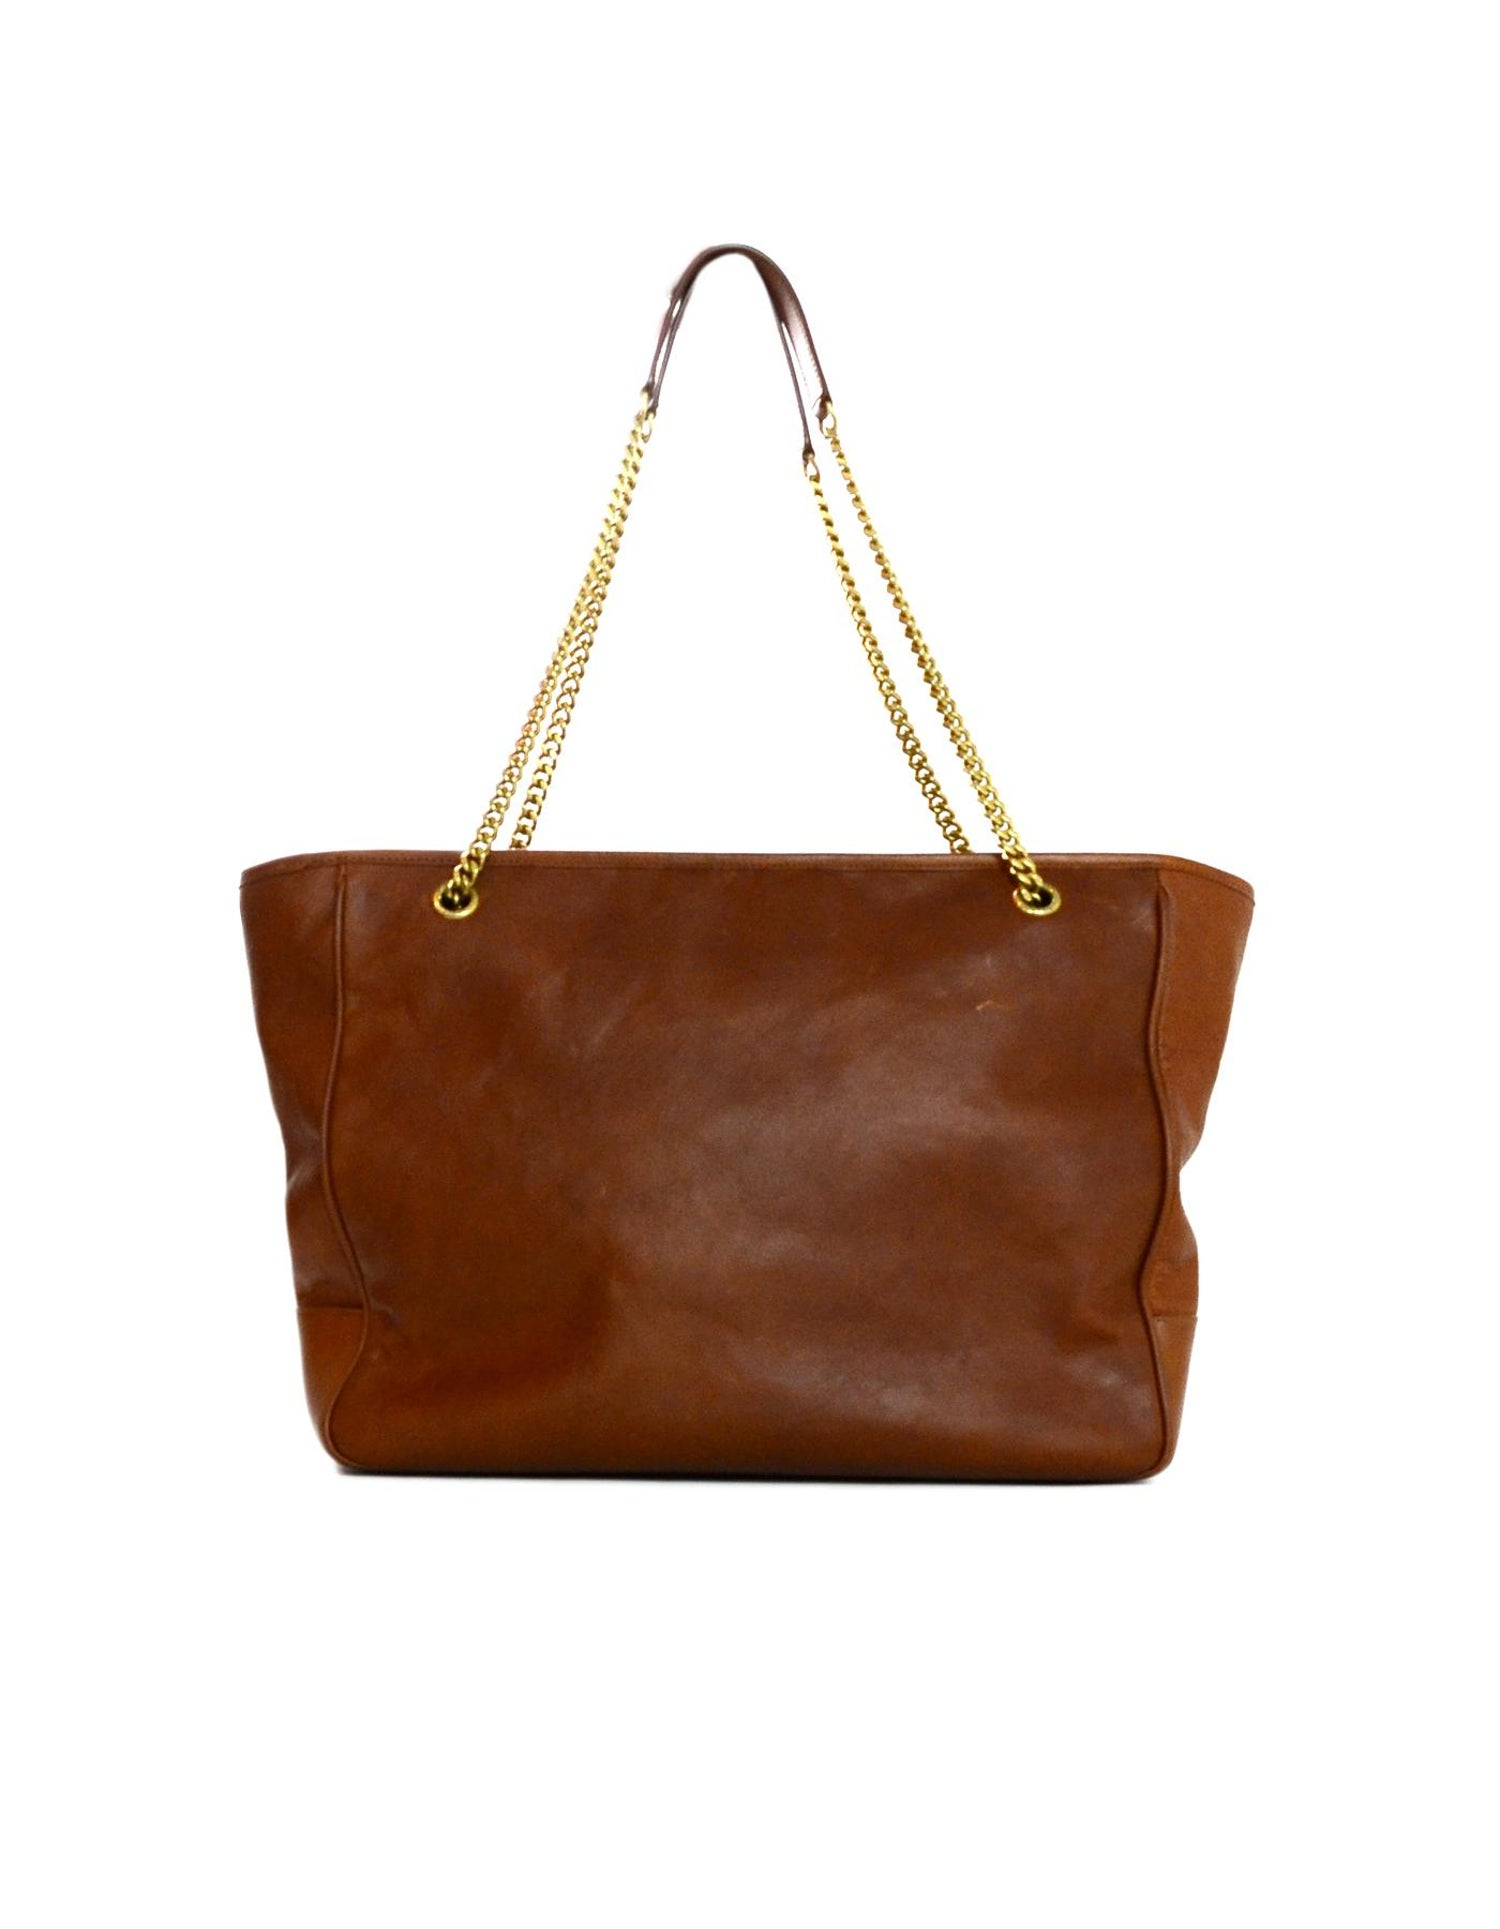 c1d38b7b12a84 Yves Saint Laurent YSL 2018 Brown Leather Niki Large Shopping Tote Bag at  1stdibs